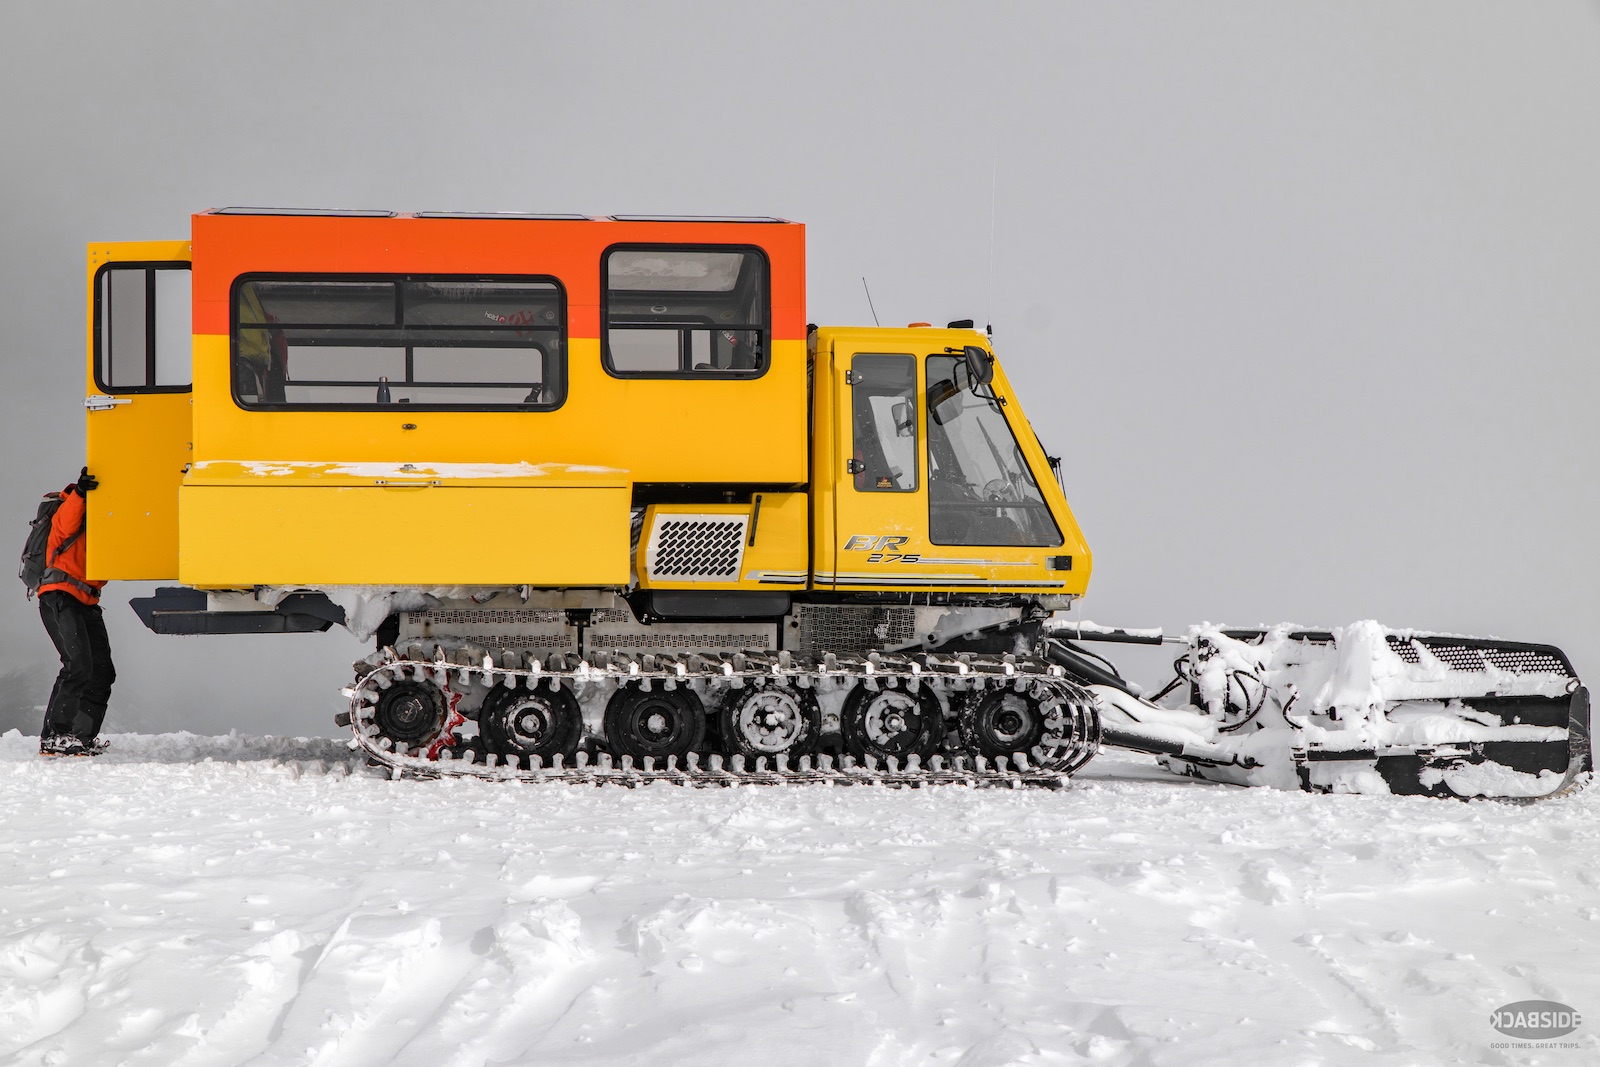 snowcat-side-profile-cariboo-cat-ski-rad-media